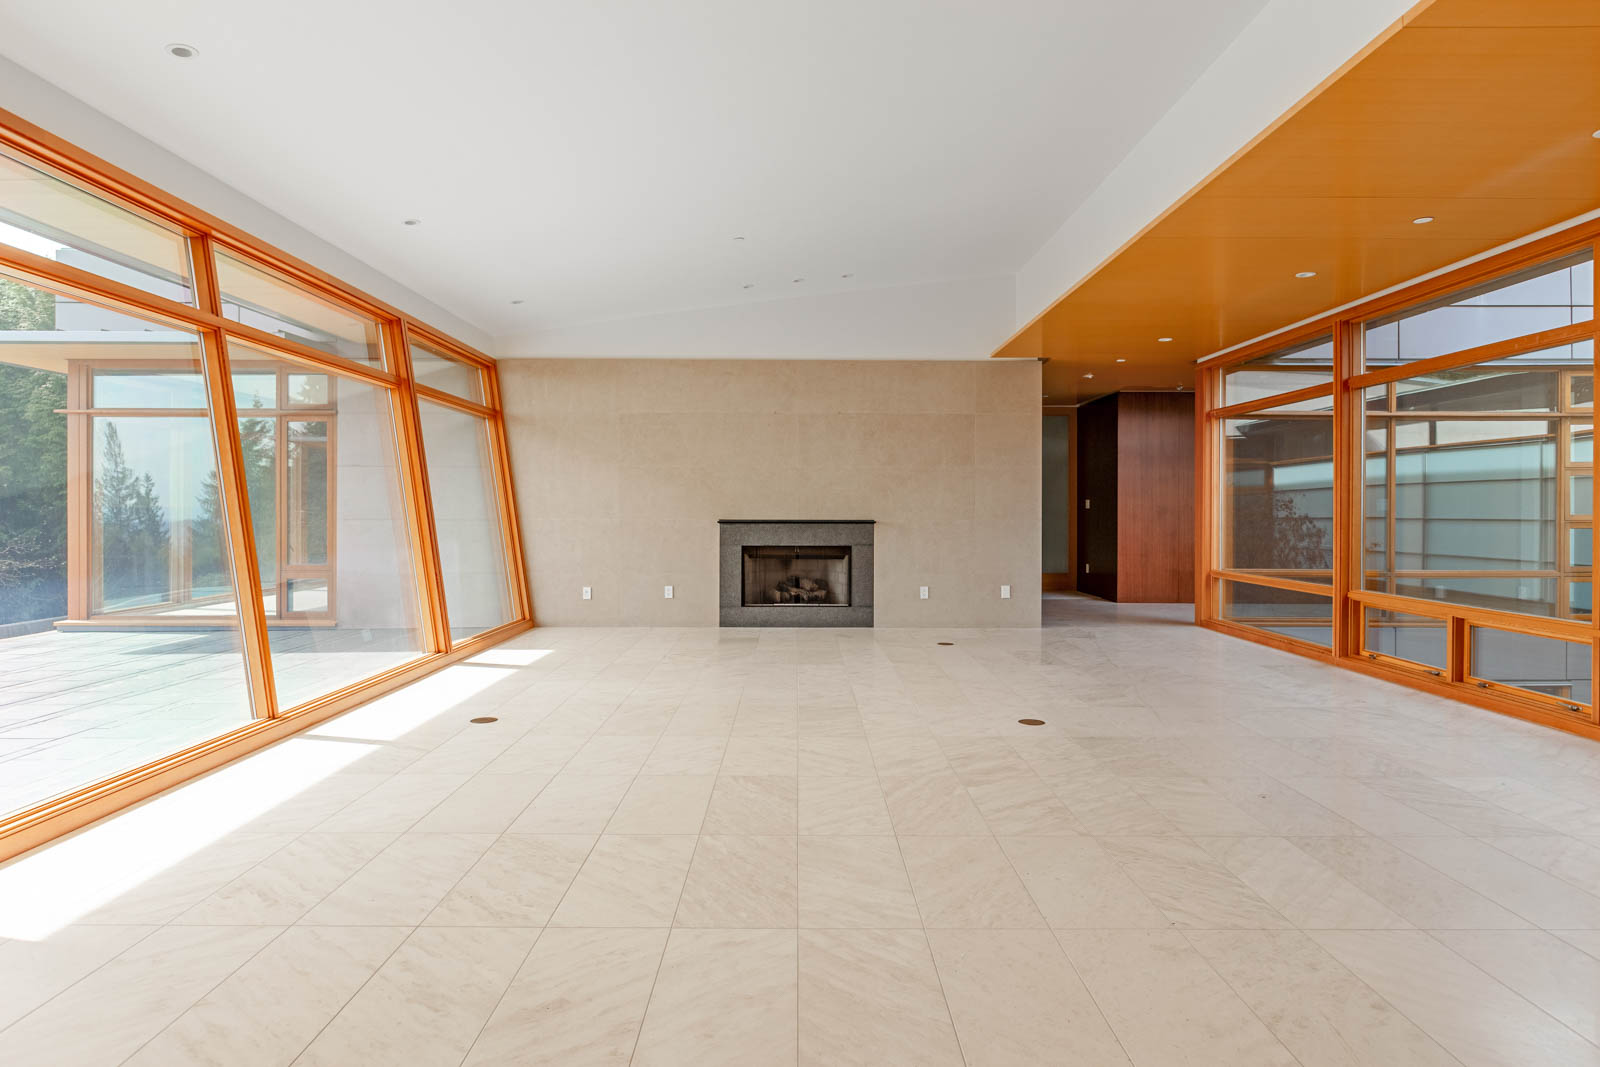 Living area and fireplace inside West Vancouver luxury rental home.